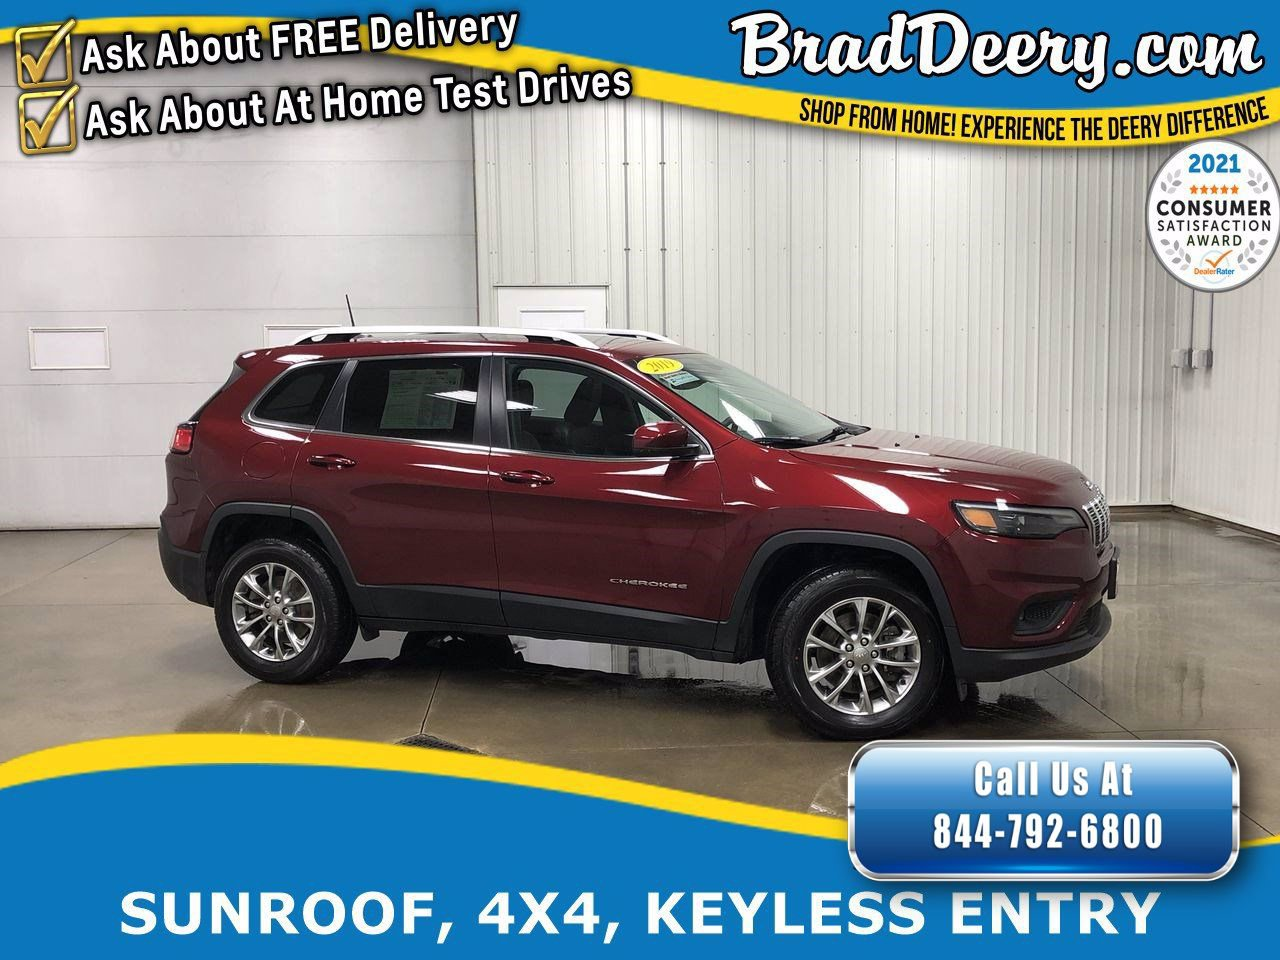 2019 Jeep Cherokee Latitude Plus 4X4 w/ No Accidents, Sunroof, Remote Start, Power Liftgate & Jeep Active Drive I